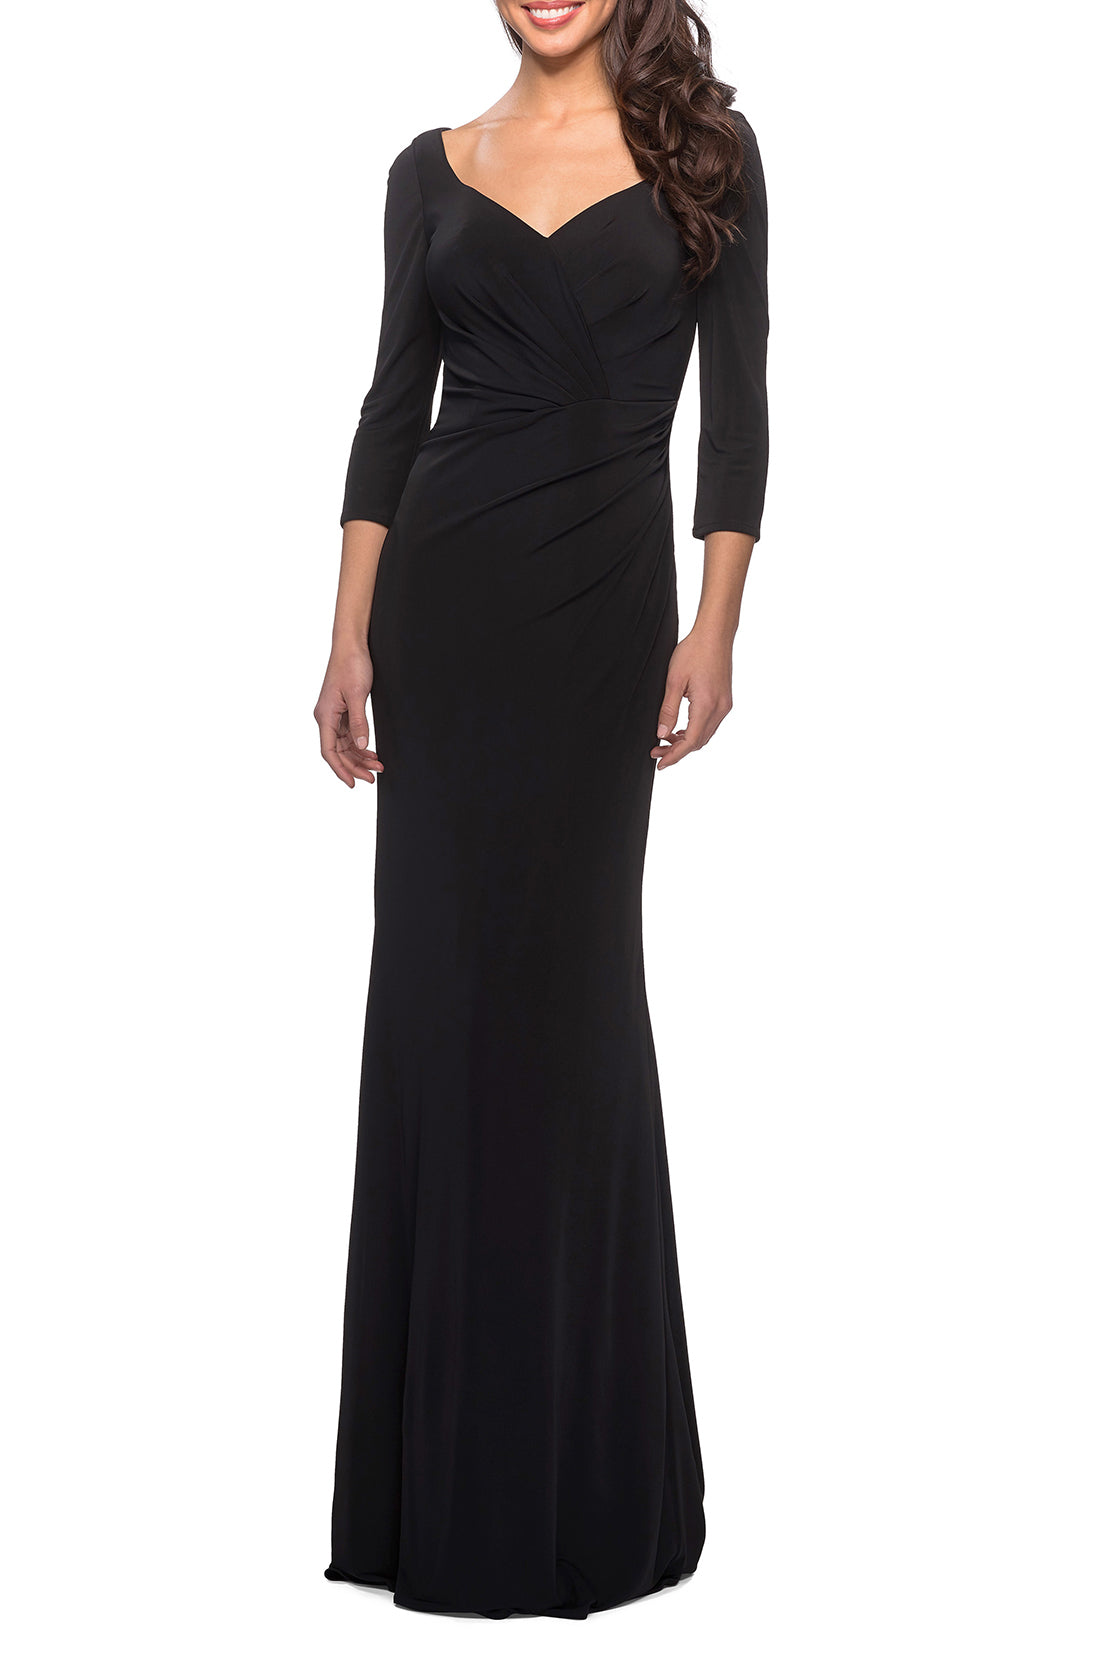 La Femme Mother Of The Bride Style 26955